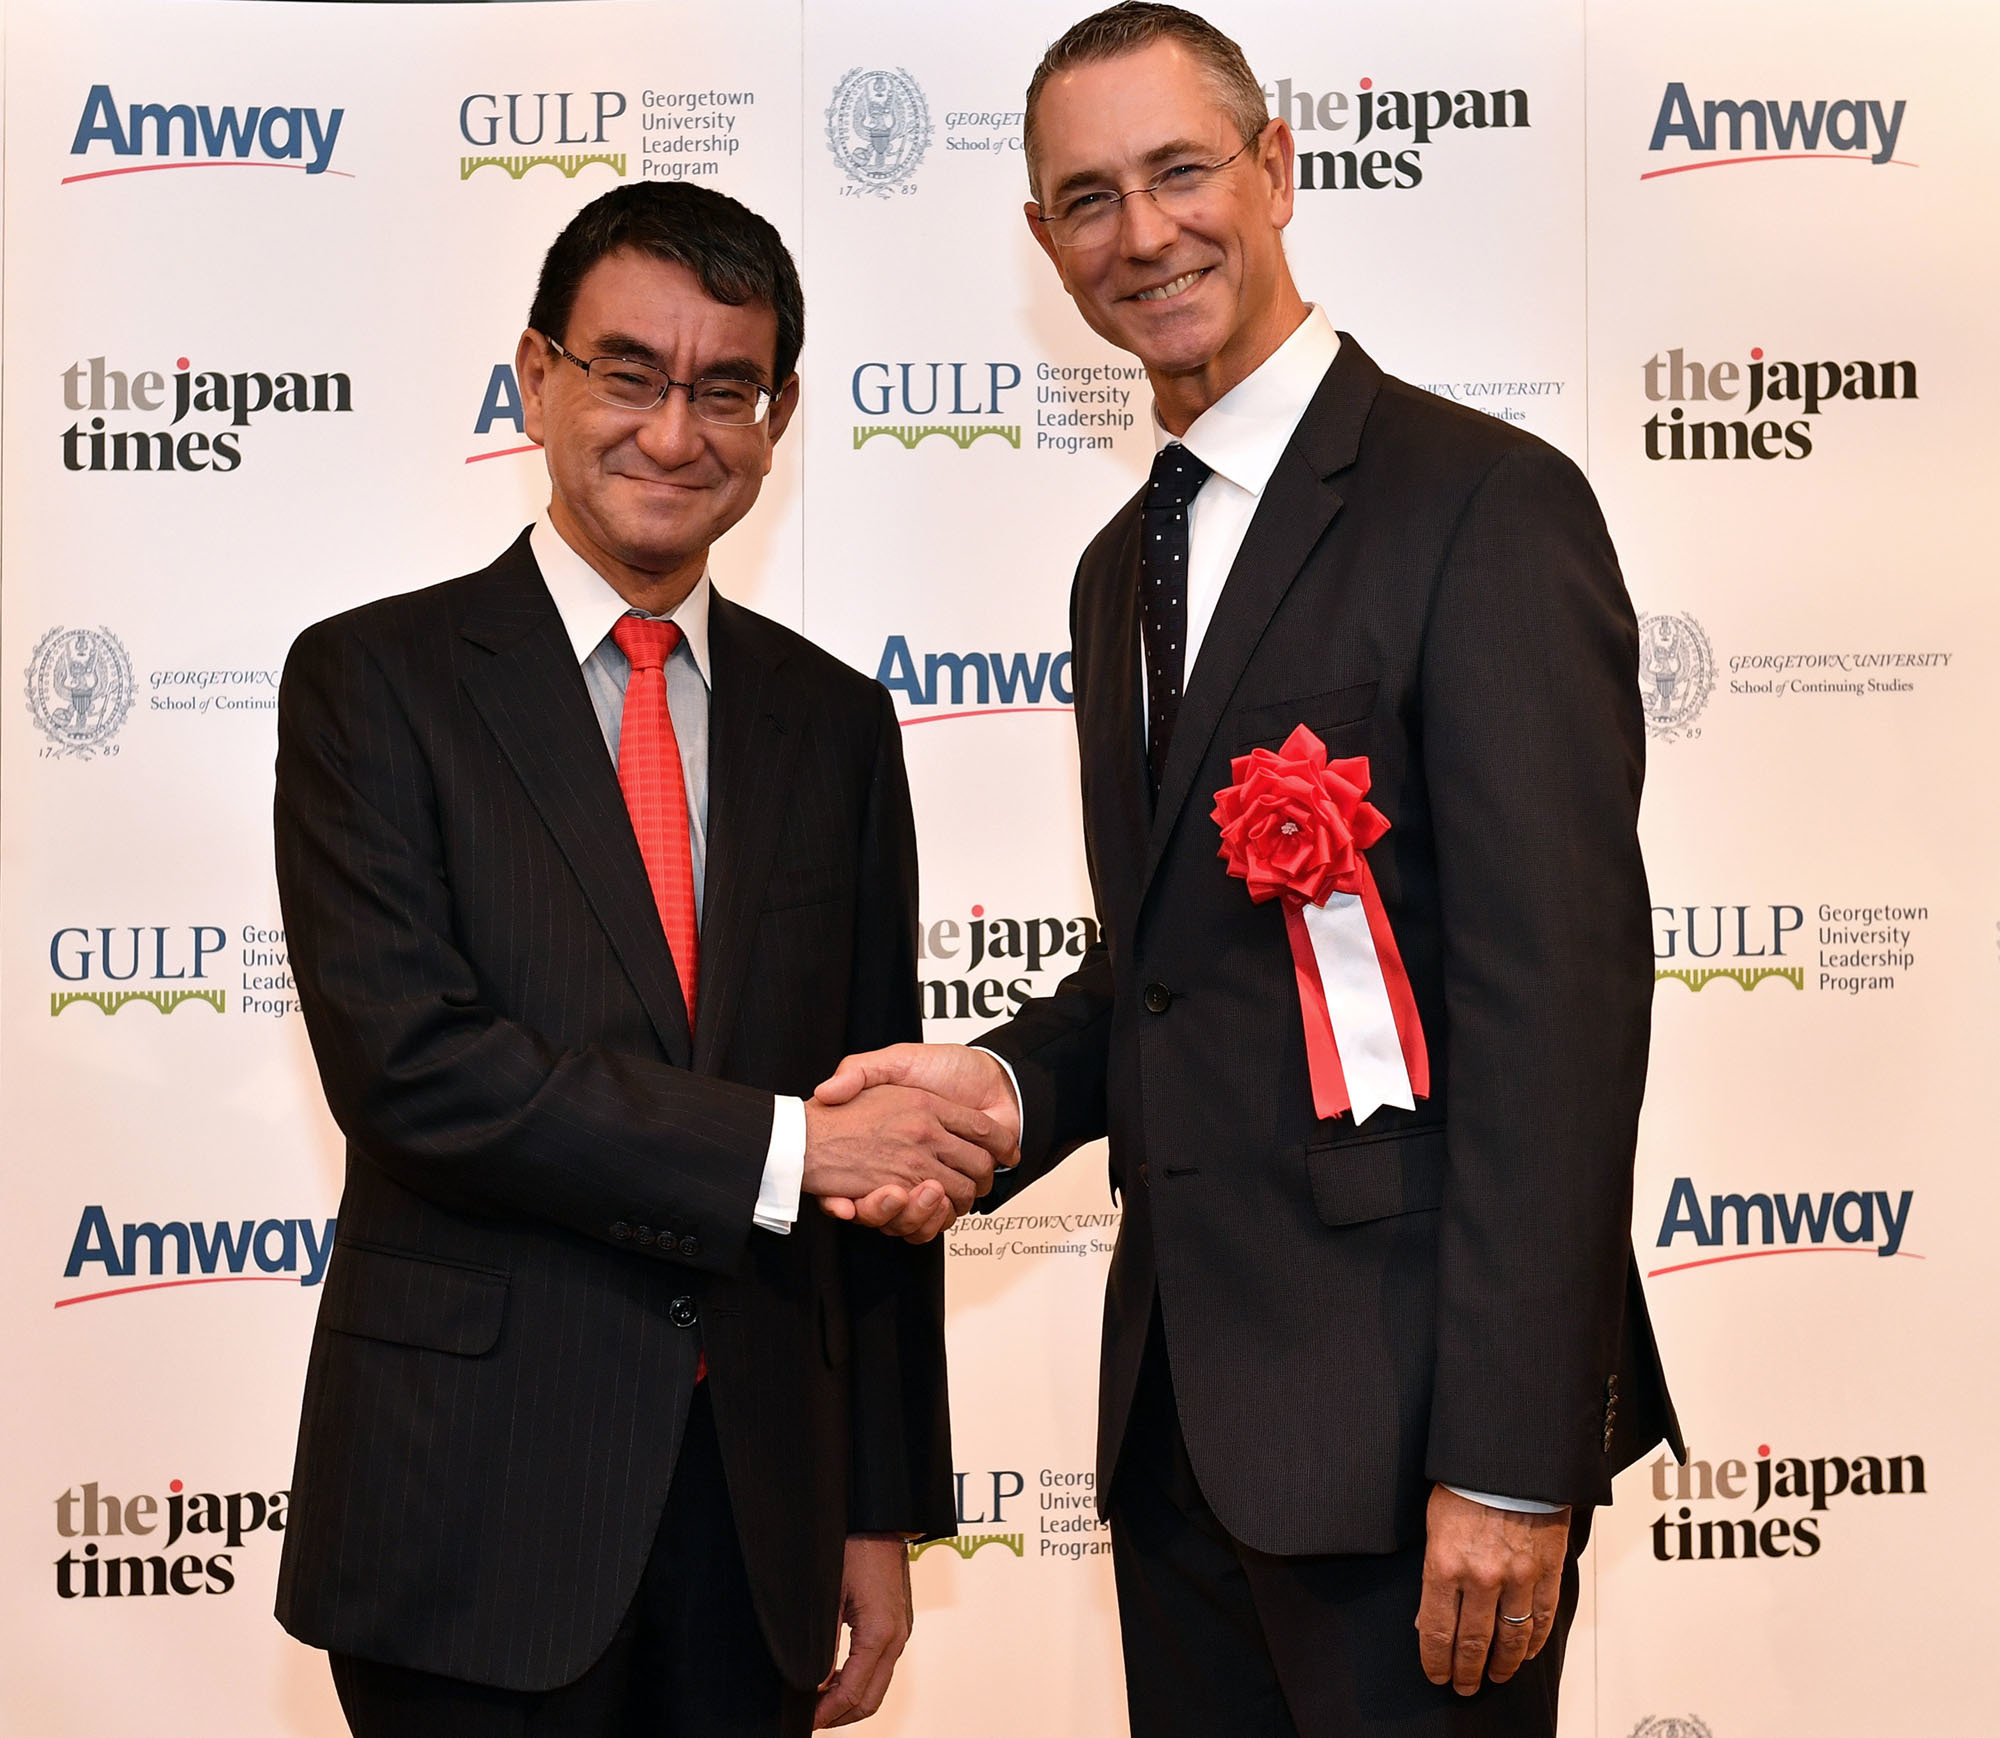 Foreign Minister Taro Kono (left) and Peter Strydom, president of Amway Japan, shake hands during a reception to celebrate the launch of the 2018 Georgetown University Leadership Program at the Cerulean Tower Tokyu Hotel in Tokyo on Sept. 10. |   YOSHIAKI MIURA